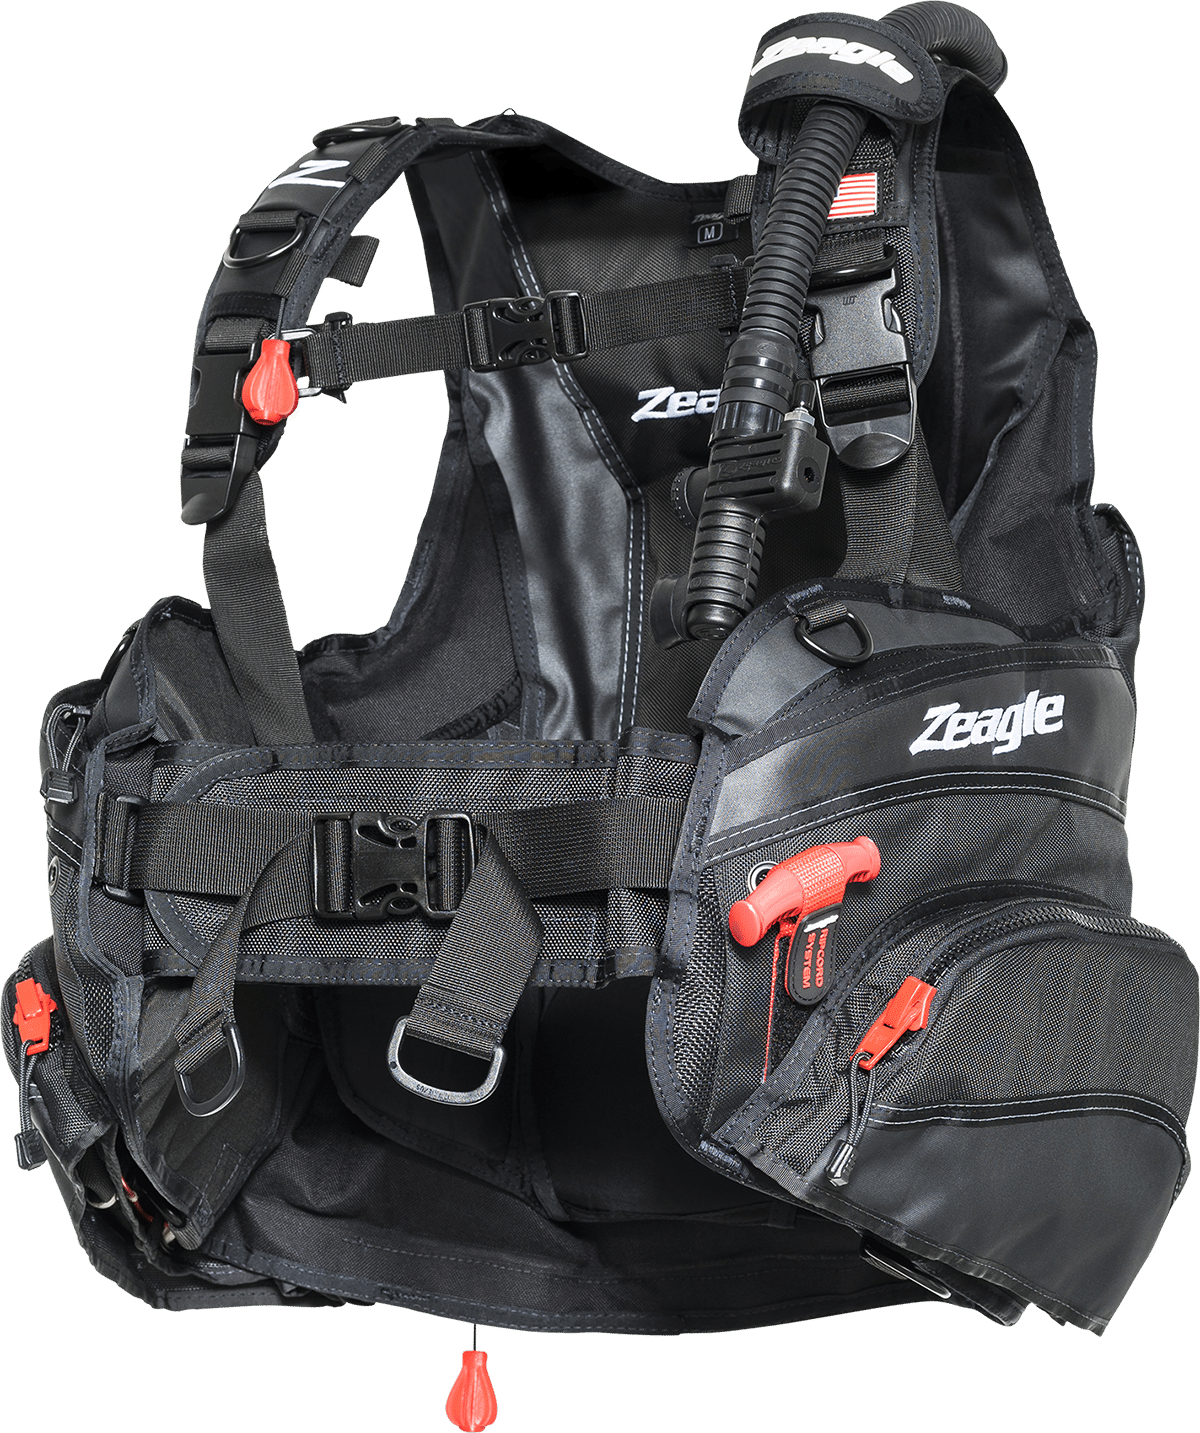 Zeagle's Halo BCD